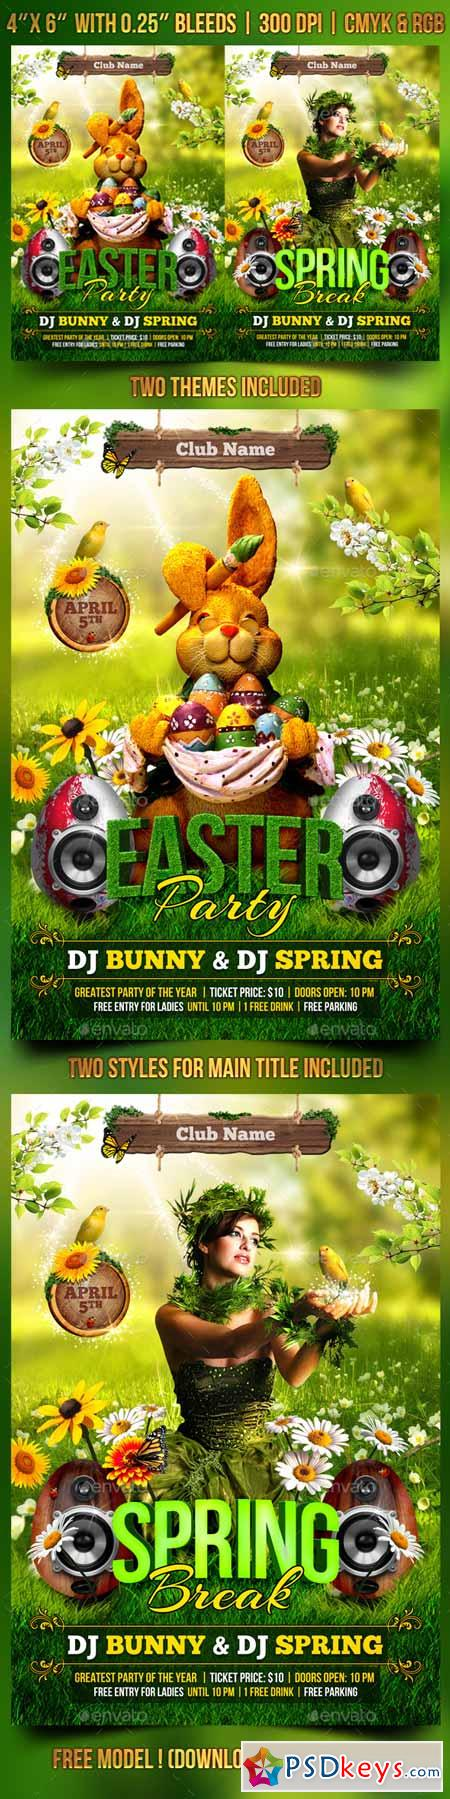 Spring and Easter Flyer Template 10668995